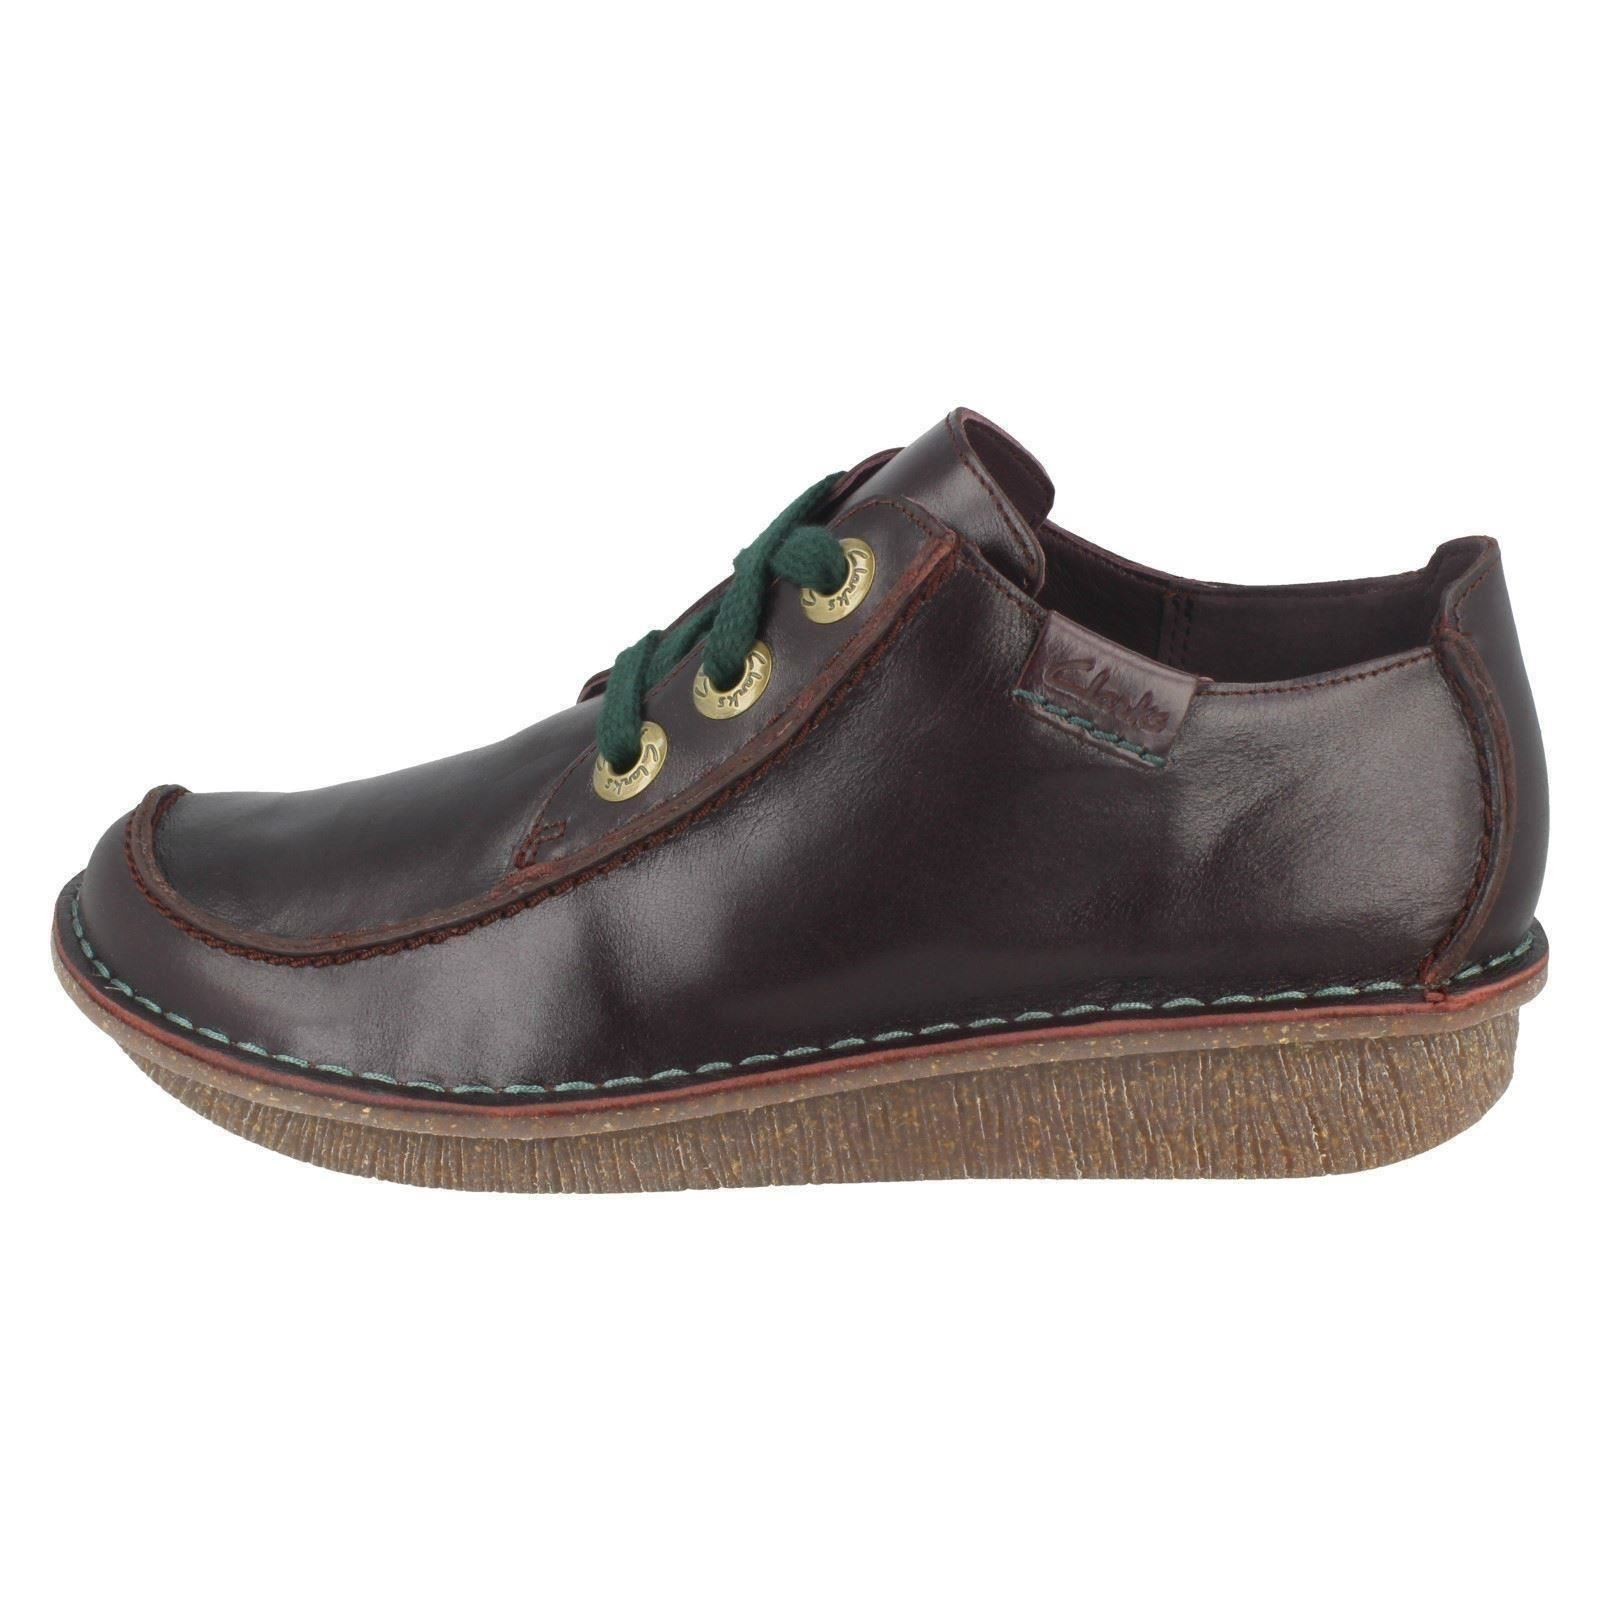 Ladies-Clarks-Casual-Lace-Up-Leather-Shoes-Funny-